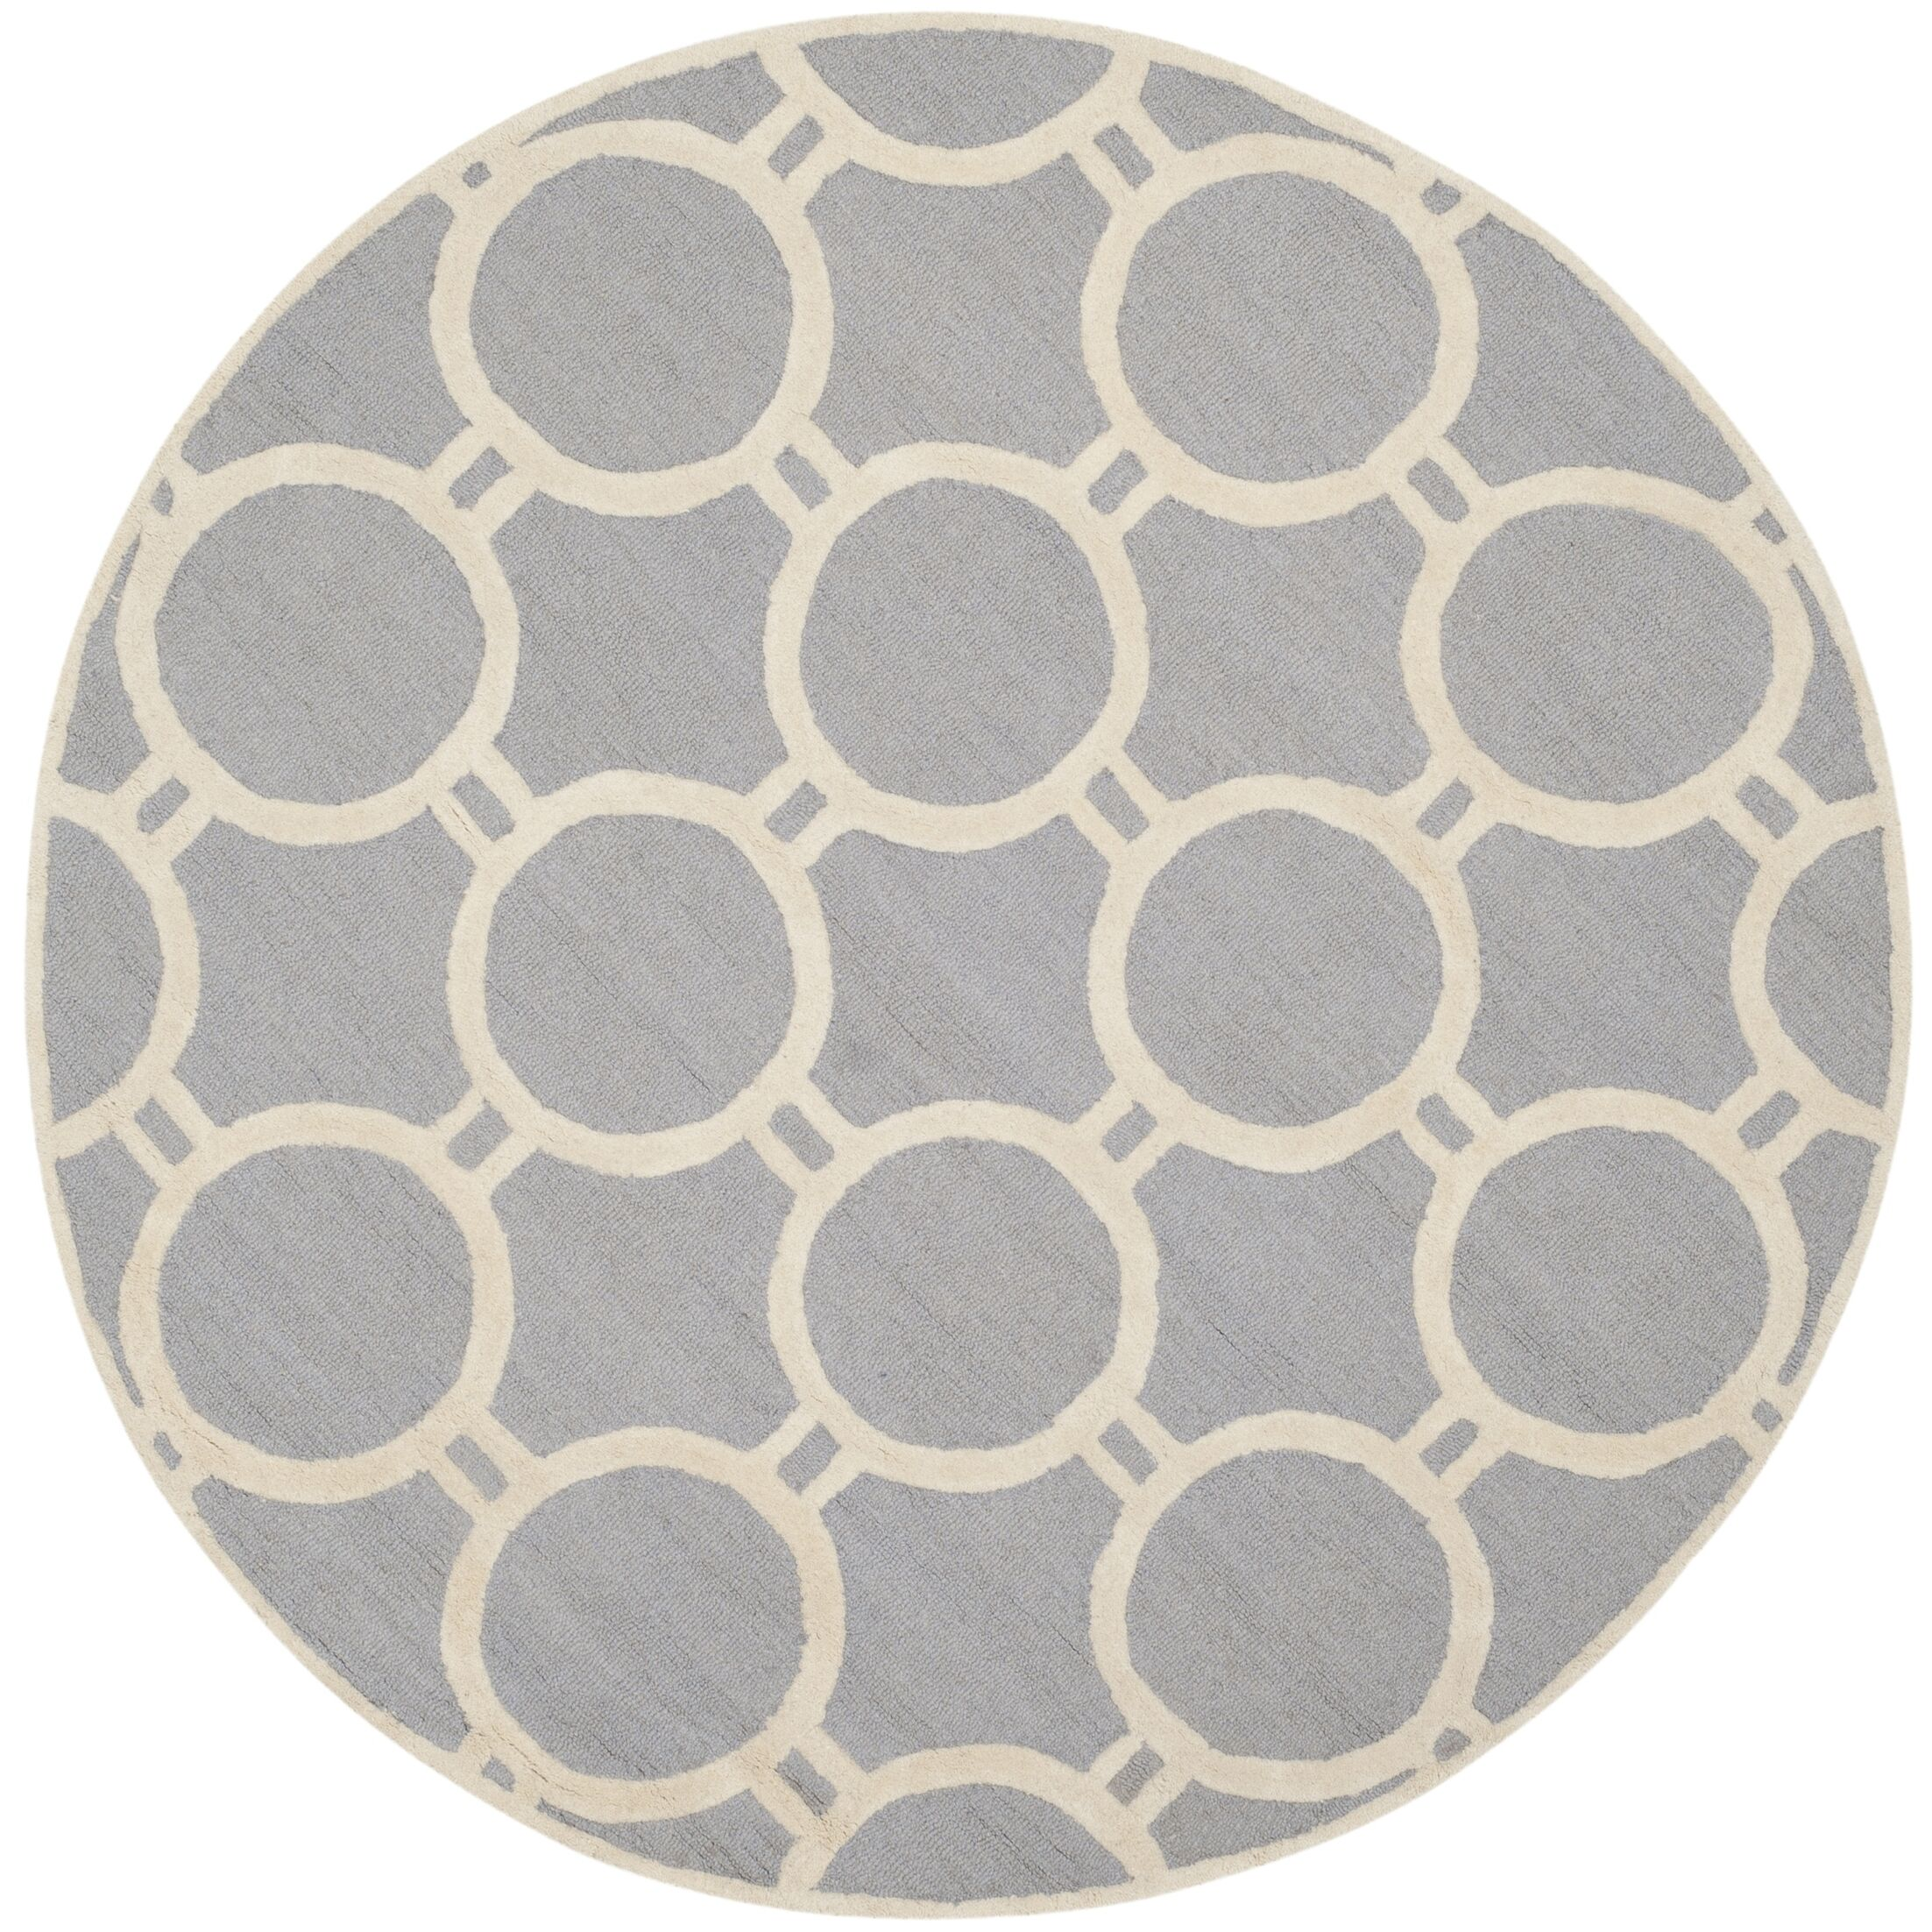 Martins Hand-Tufted Wool Silver/Ivory Area Rug Rug Size: Round 6'